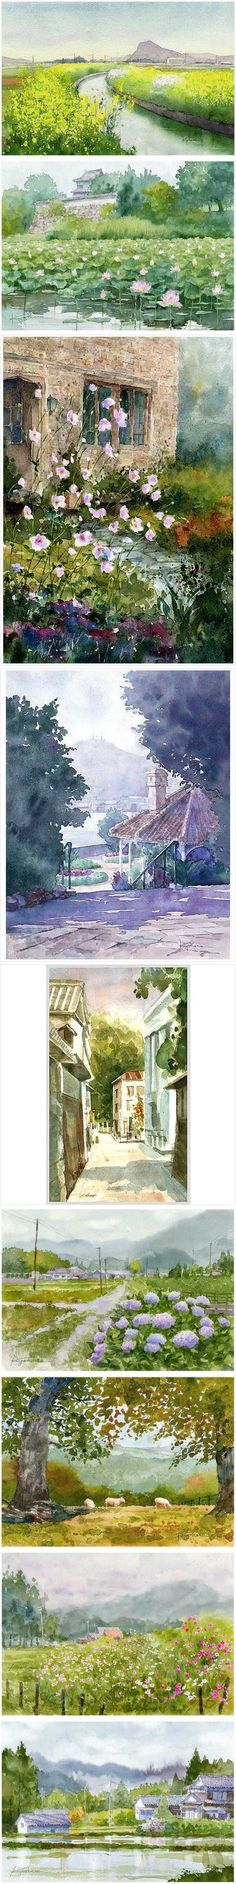 Watercolor Landscape Painting - Artist from Fukuoka, Japan, the Ballad Kawasaki Kiyoharu